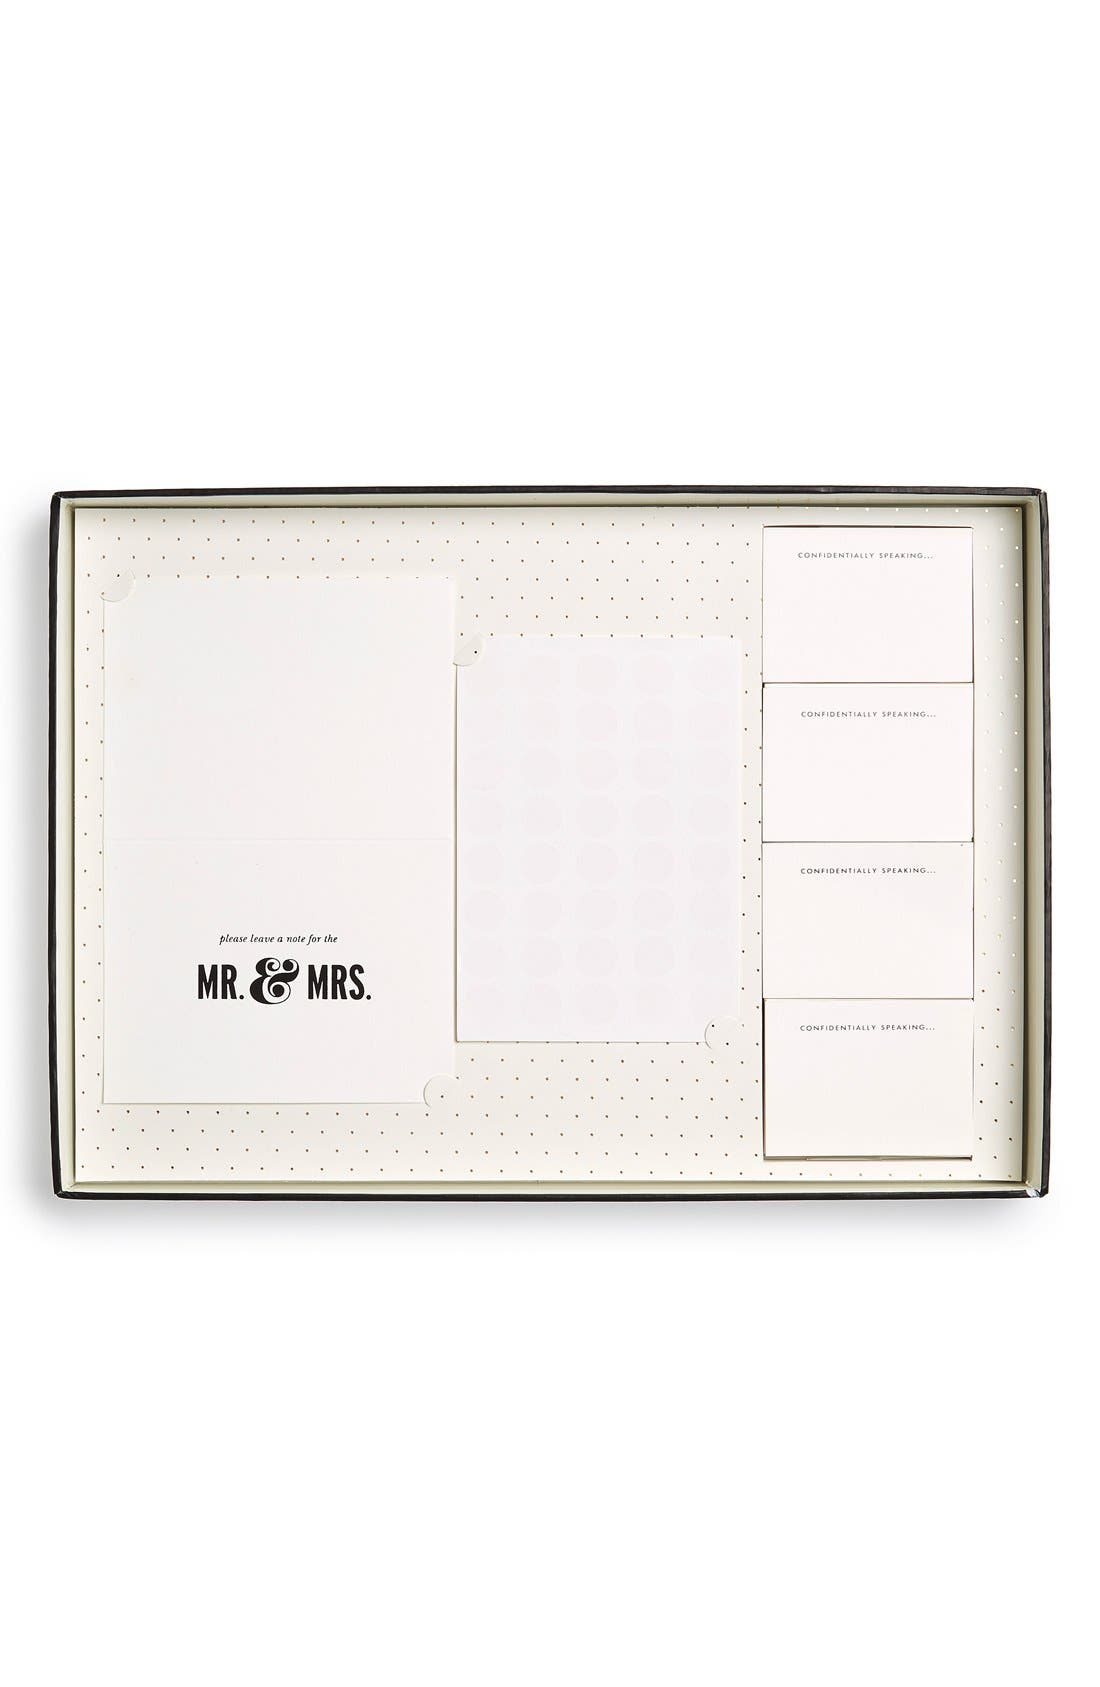 KATE SPADE NEW YORK,                             'notes to the bride & groom' guest book,                             Alternate thumbnail 5, color,                             100